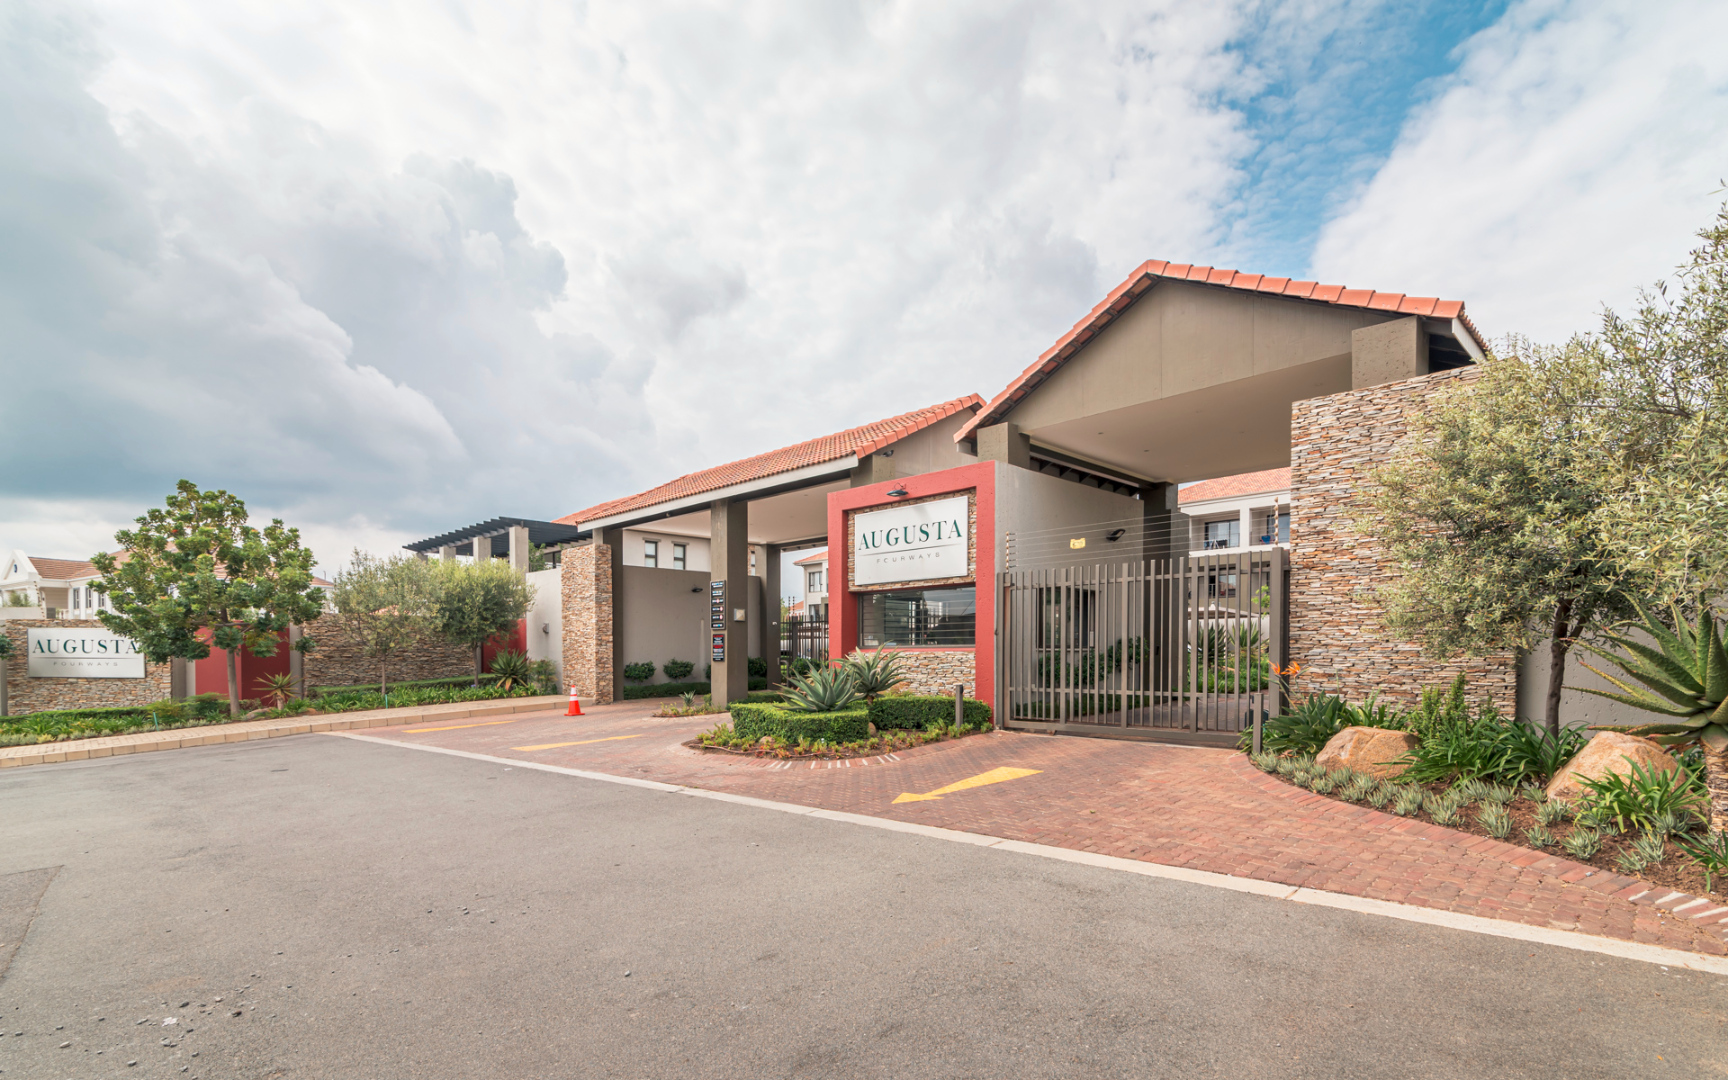 2 Bedroom Apartment / Flat For Sale in Fourways